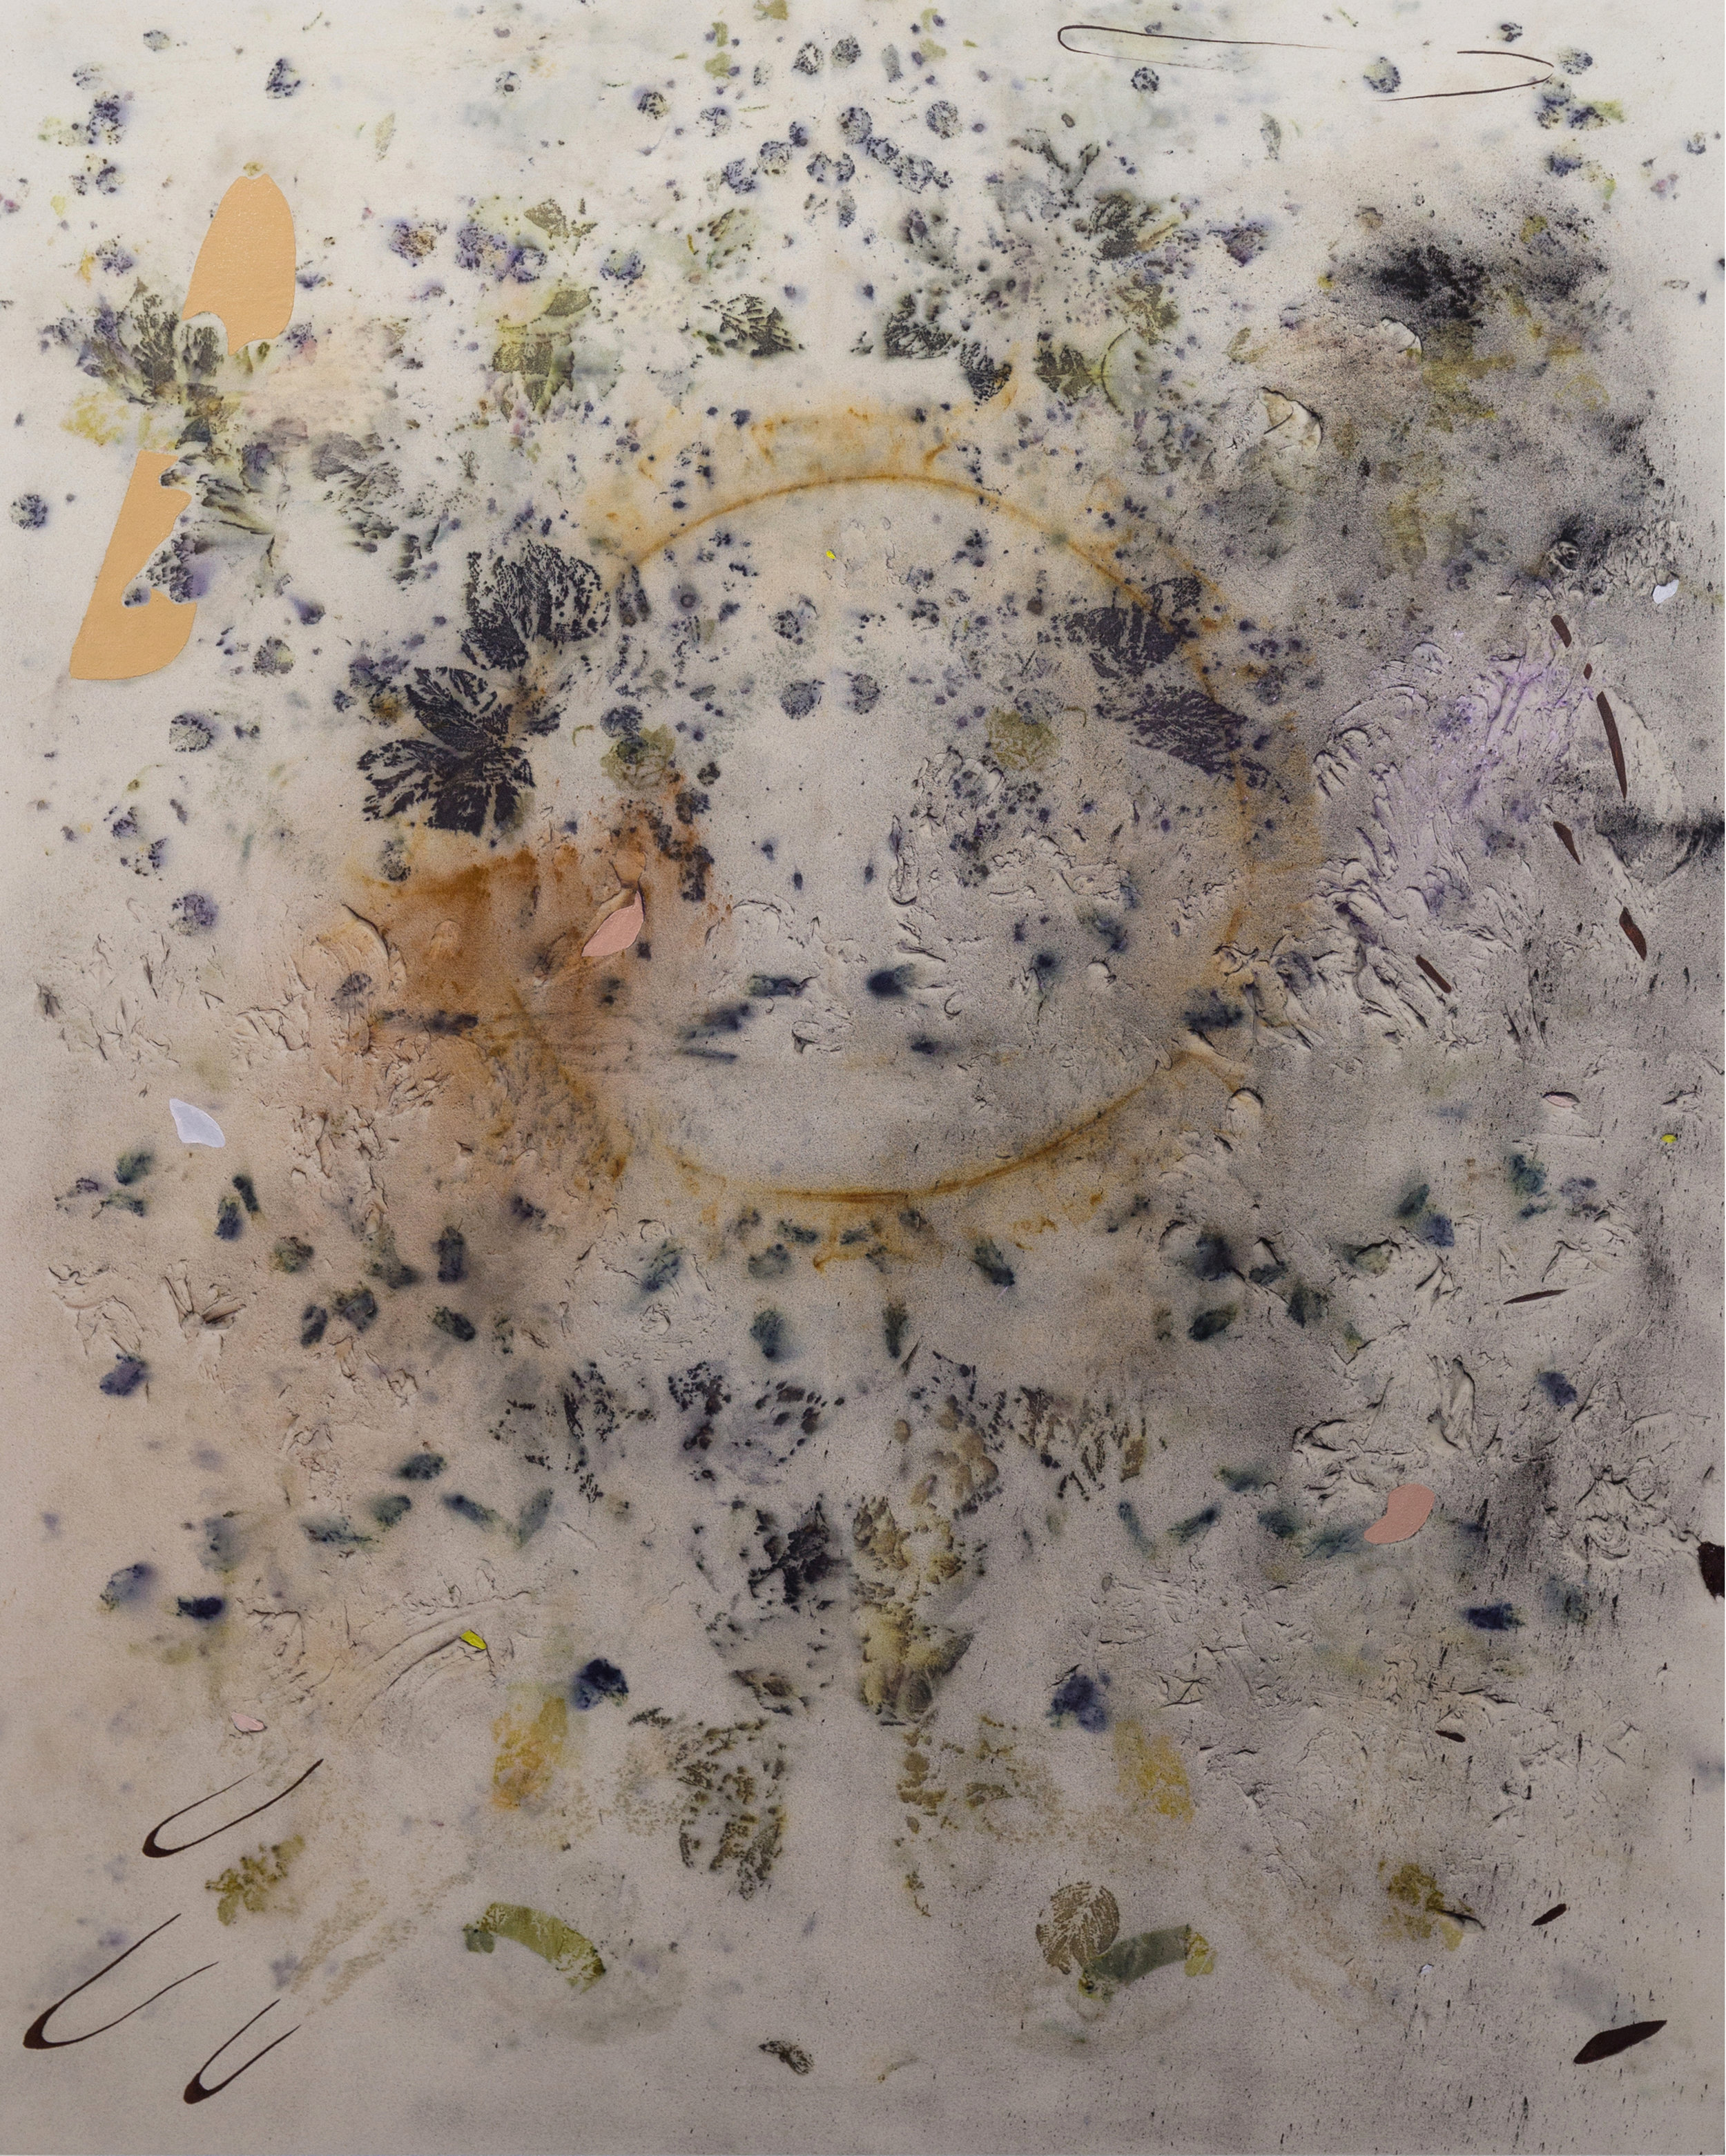 """Gillian King,  Red Osier Armor , 2018, cold wax medium, oil, raw pigments and various plant material on canvas, 60"""" x 48"""" (154 x 122 cm)"""